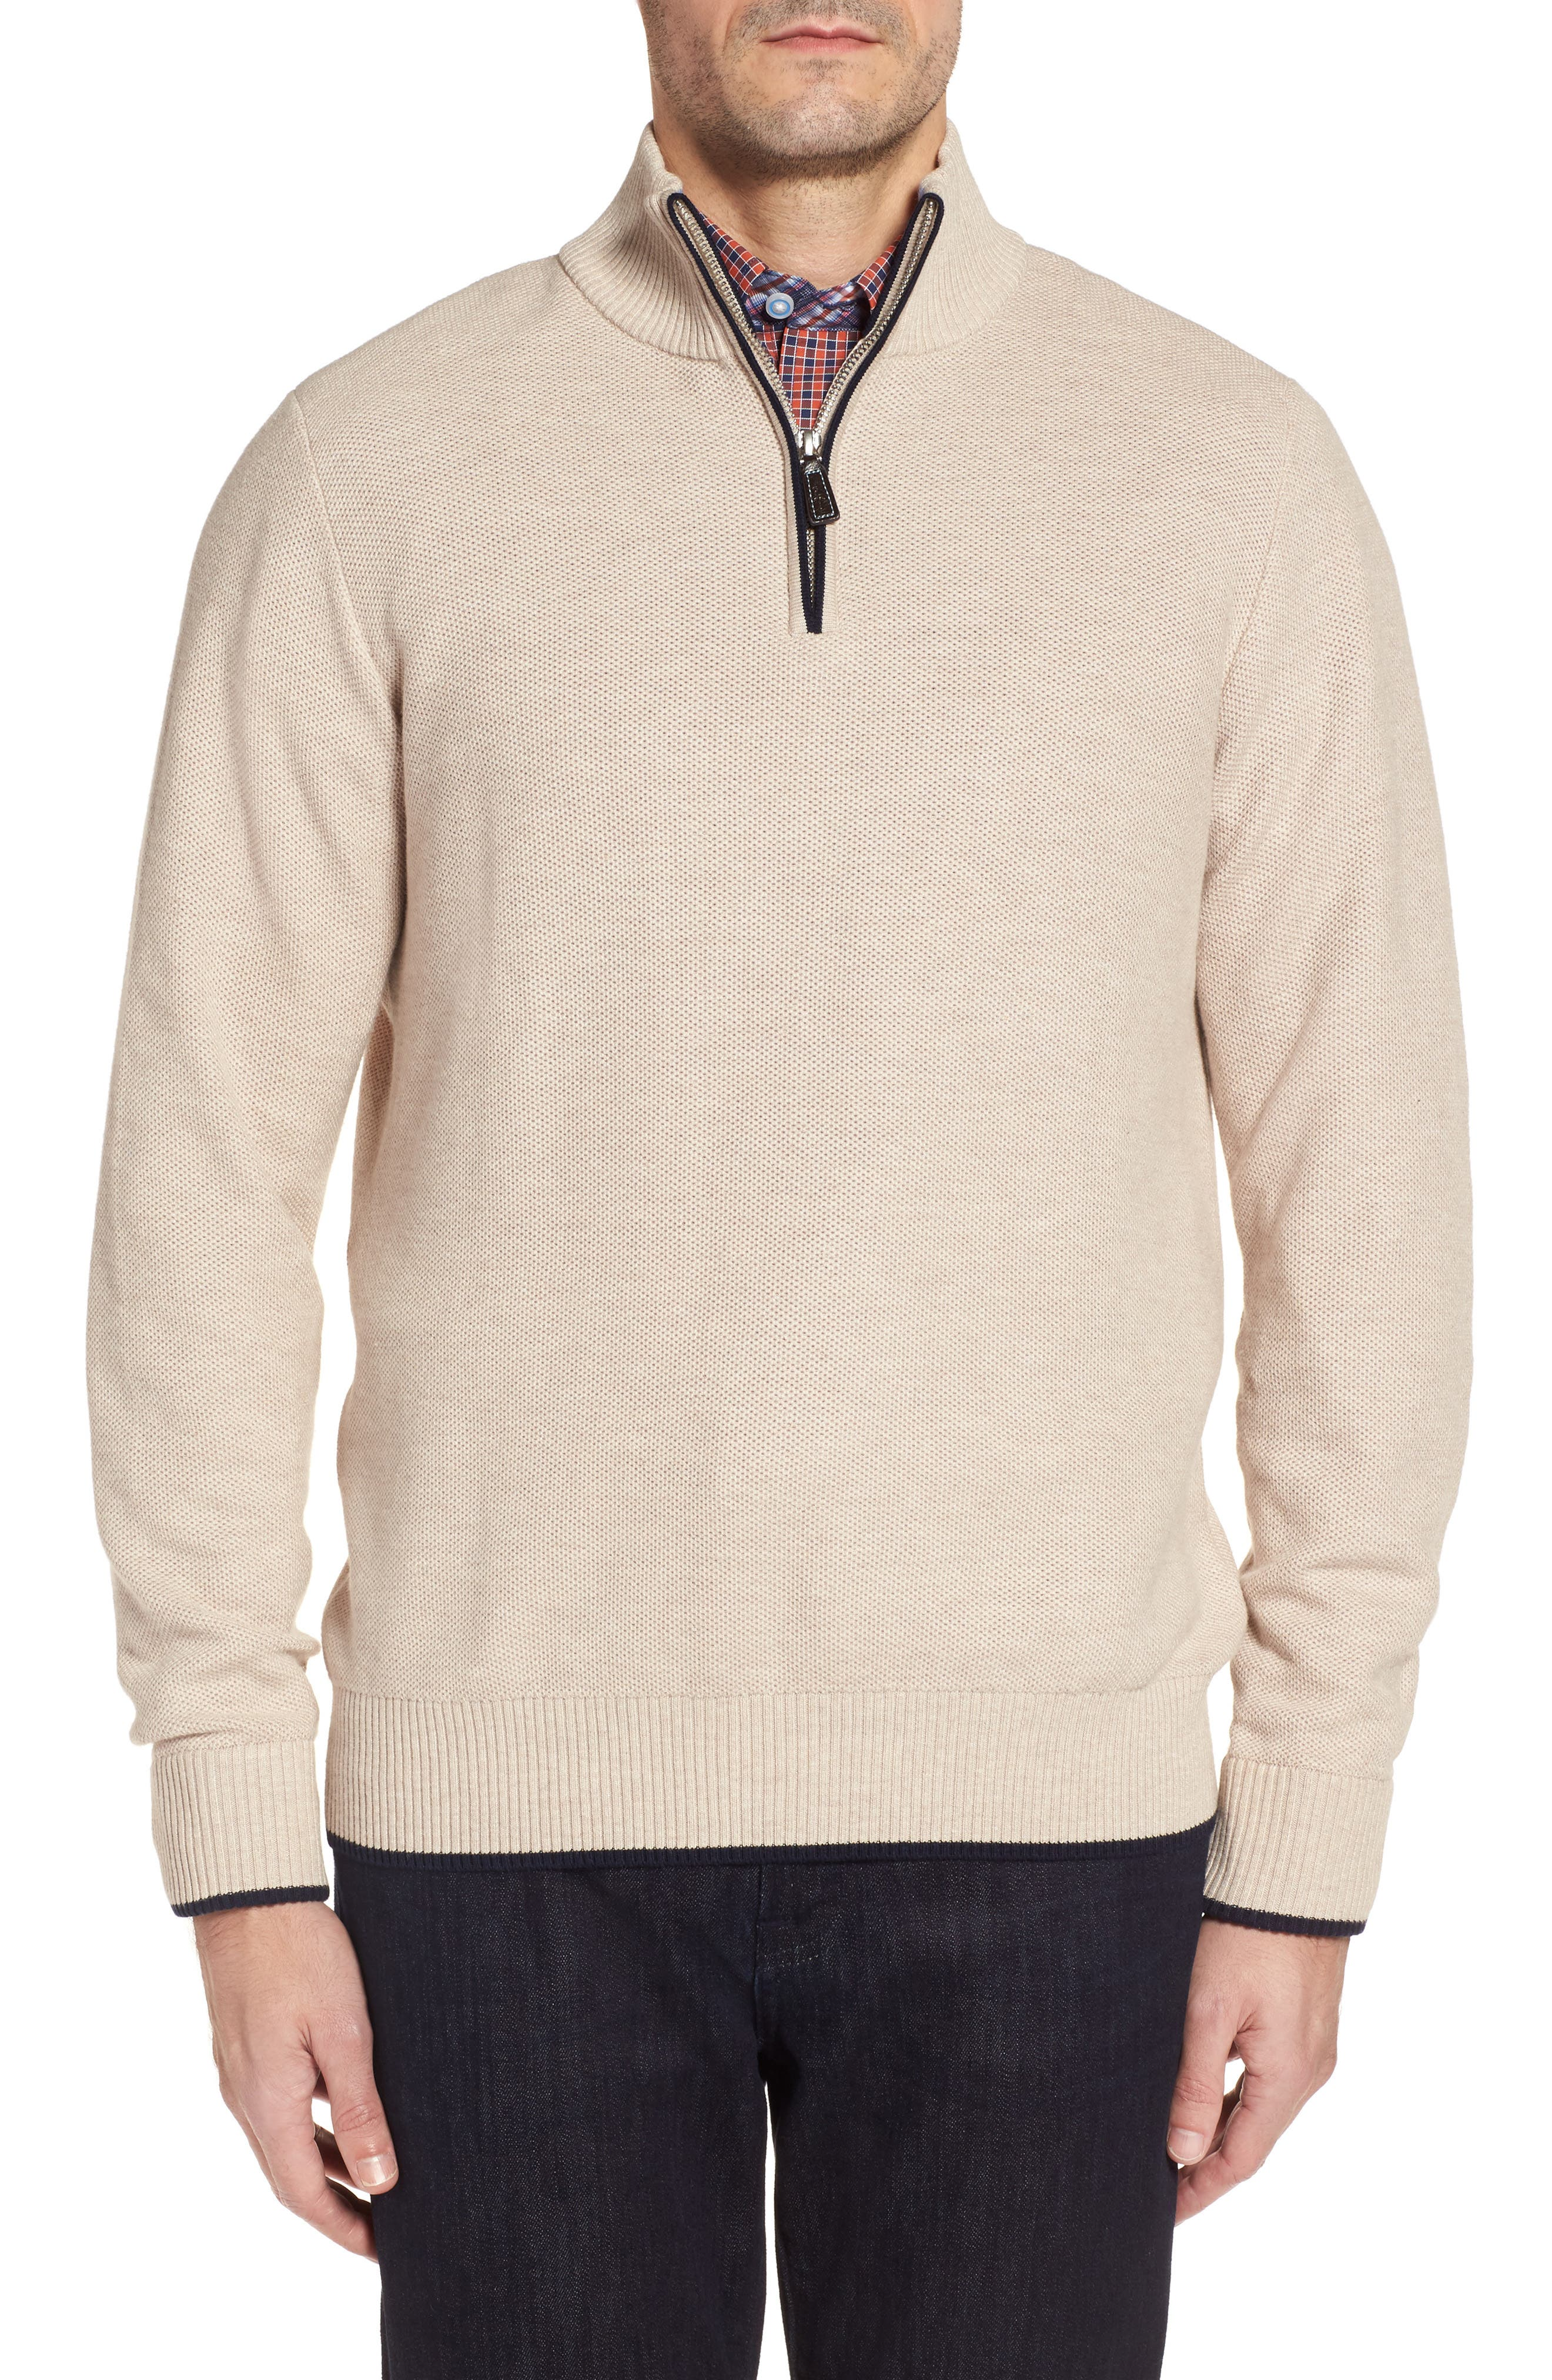 Sikes Tipped Quarter Zip Sweater,                             Main thumbnail 1, color,                             Oatmeal